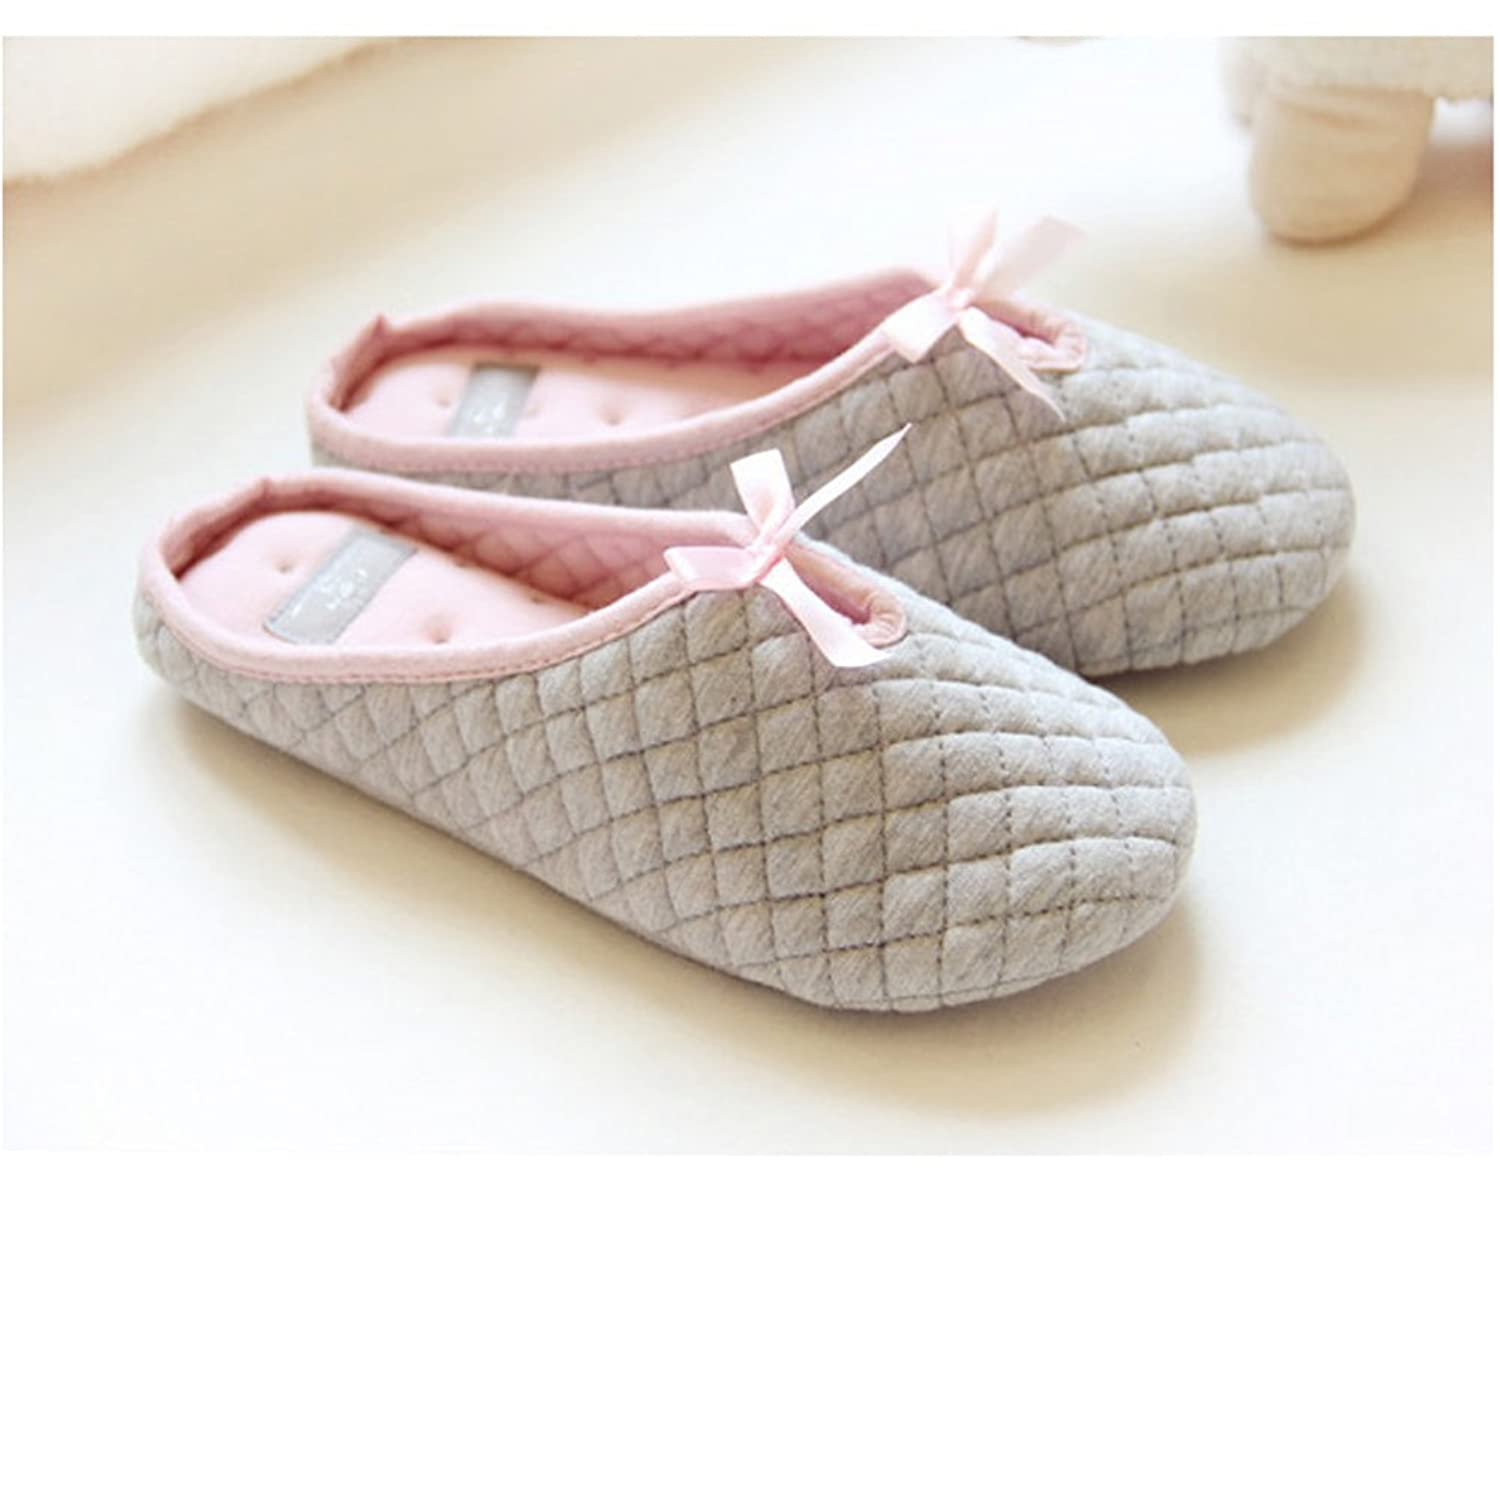 Amazon com   Women Lady s Slip on Checkered Soft Warm Breathable Cotton  Anti skid Slippers Mules with Lovely Bow Cozy Home Household Footwear Shoes. Amazon com   Women Lady s Slip on Checkered Soft Warm Breathable